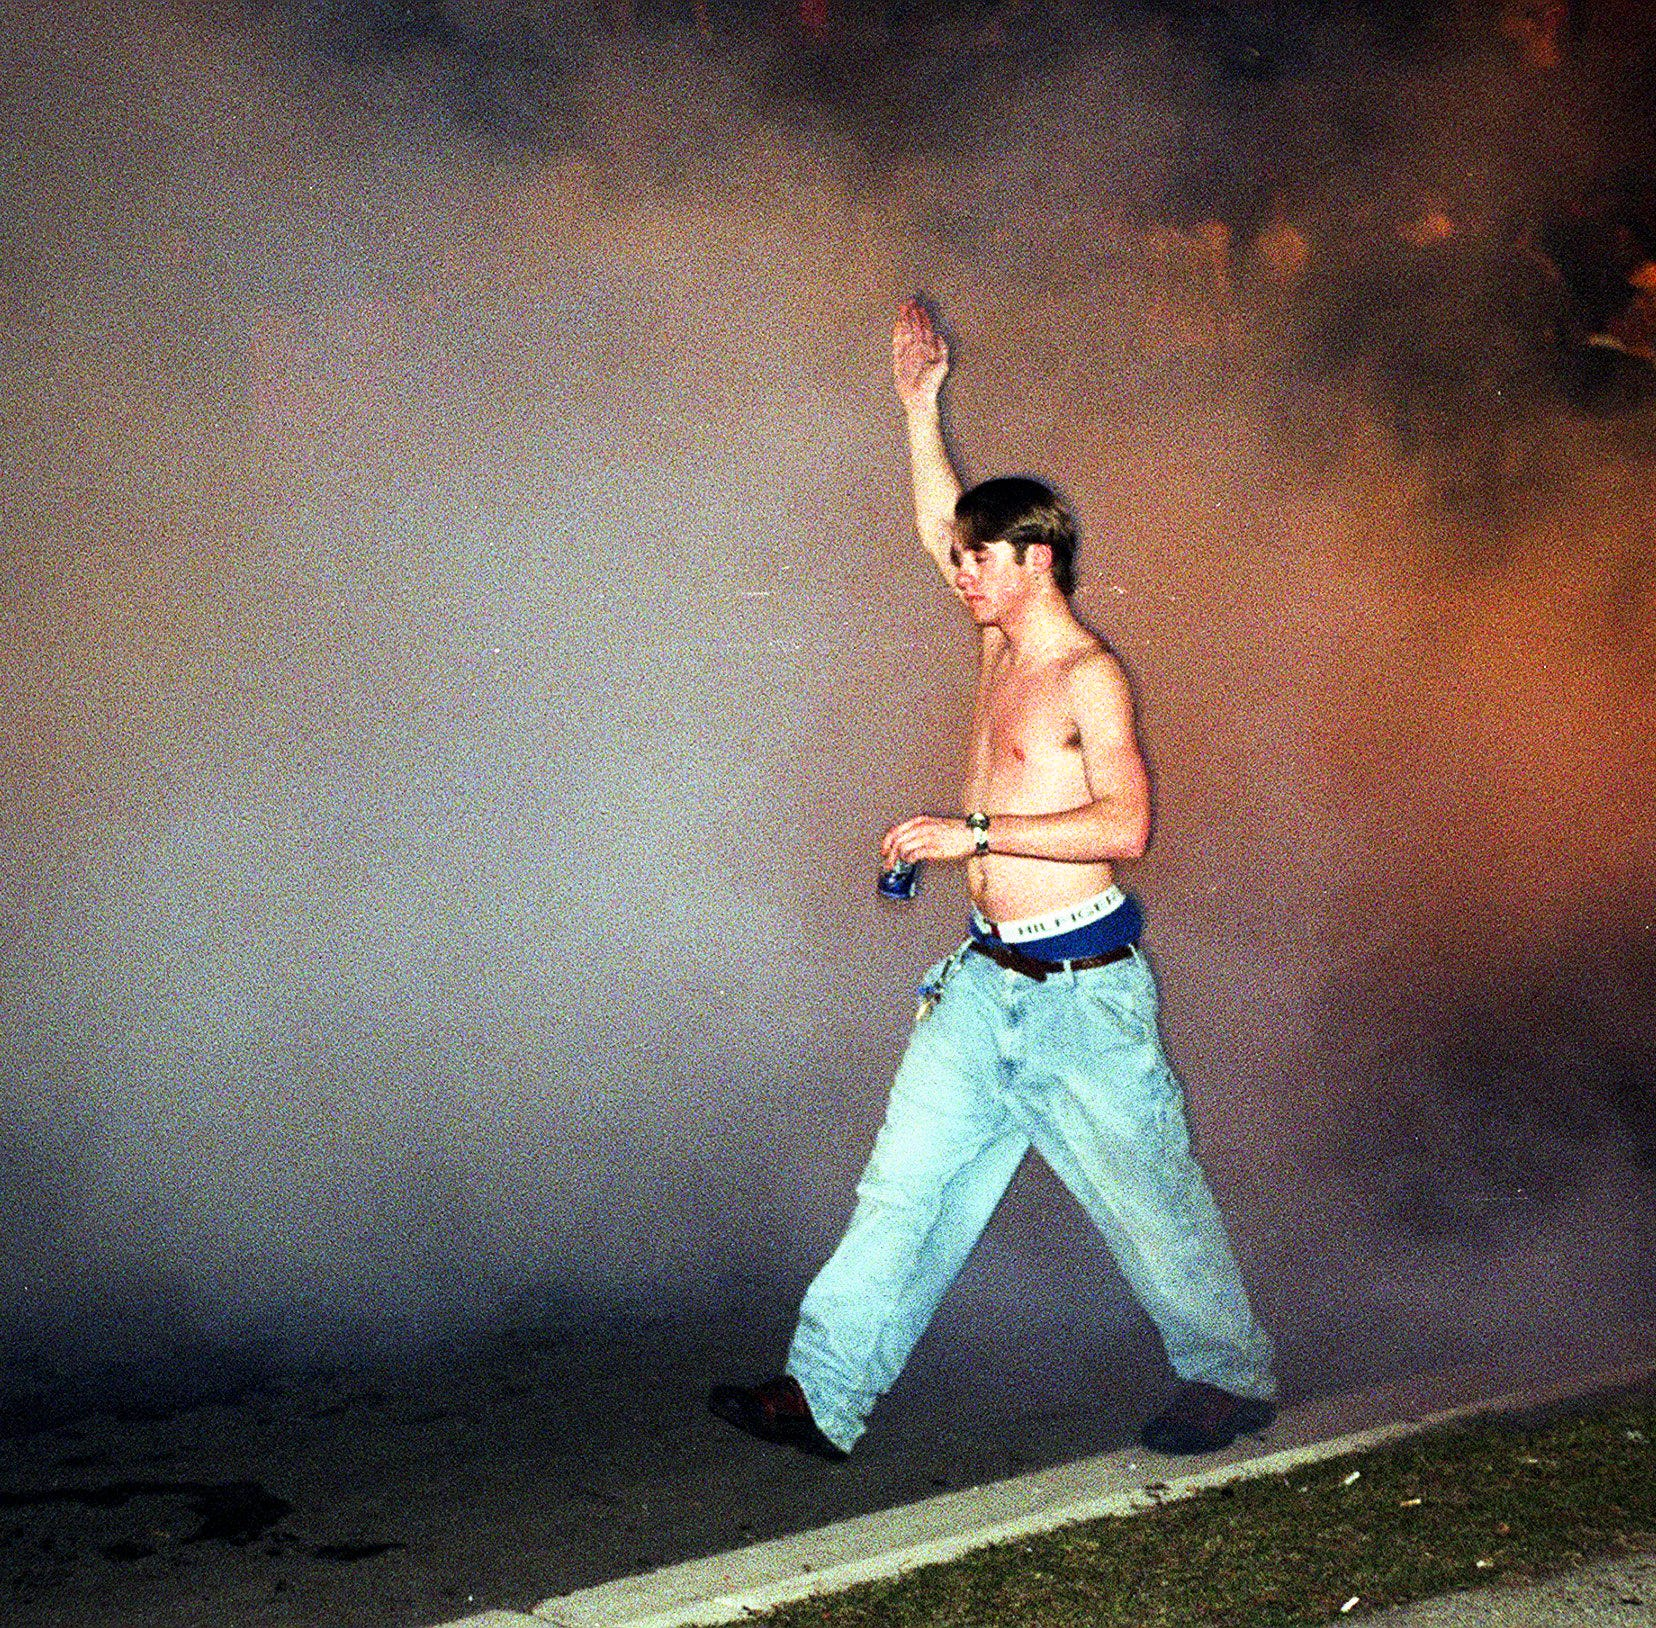 Tear gas, shattered windows and burning cars: How the 1999 riot went down in East Lansing